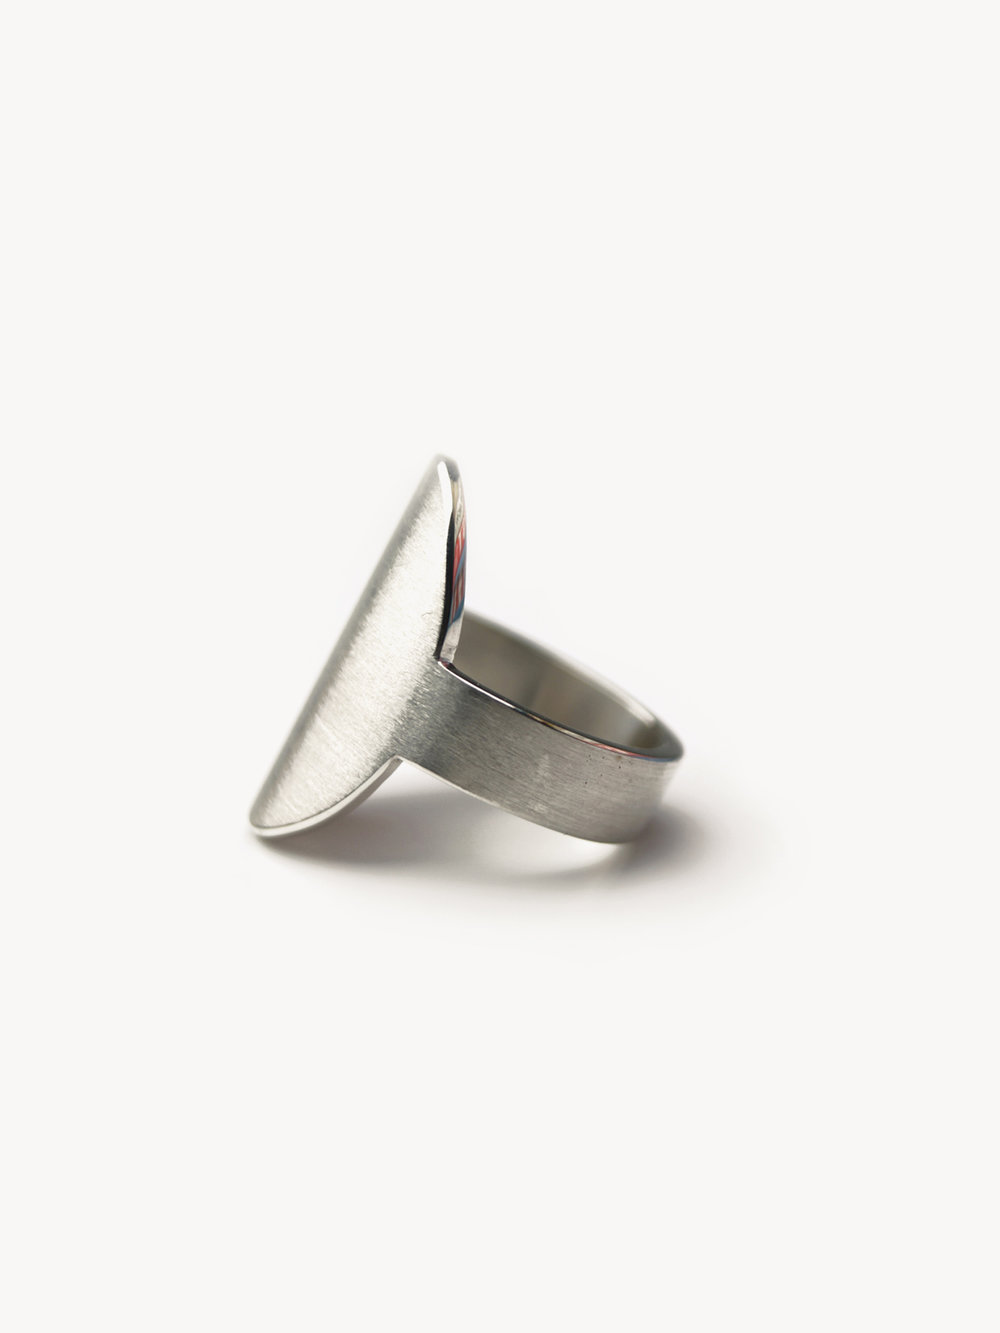 Siegelring, hochoval groß in 925 Silber/ Signet ring, vertical oval big in sterling silver